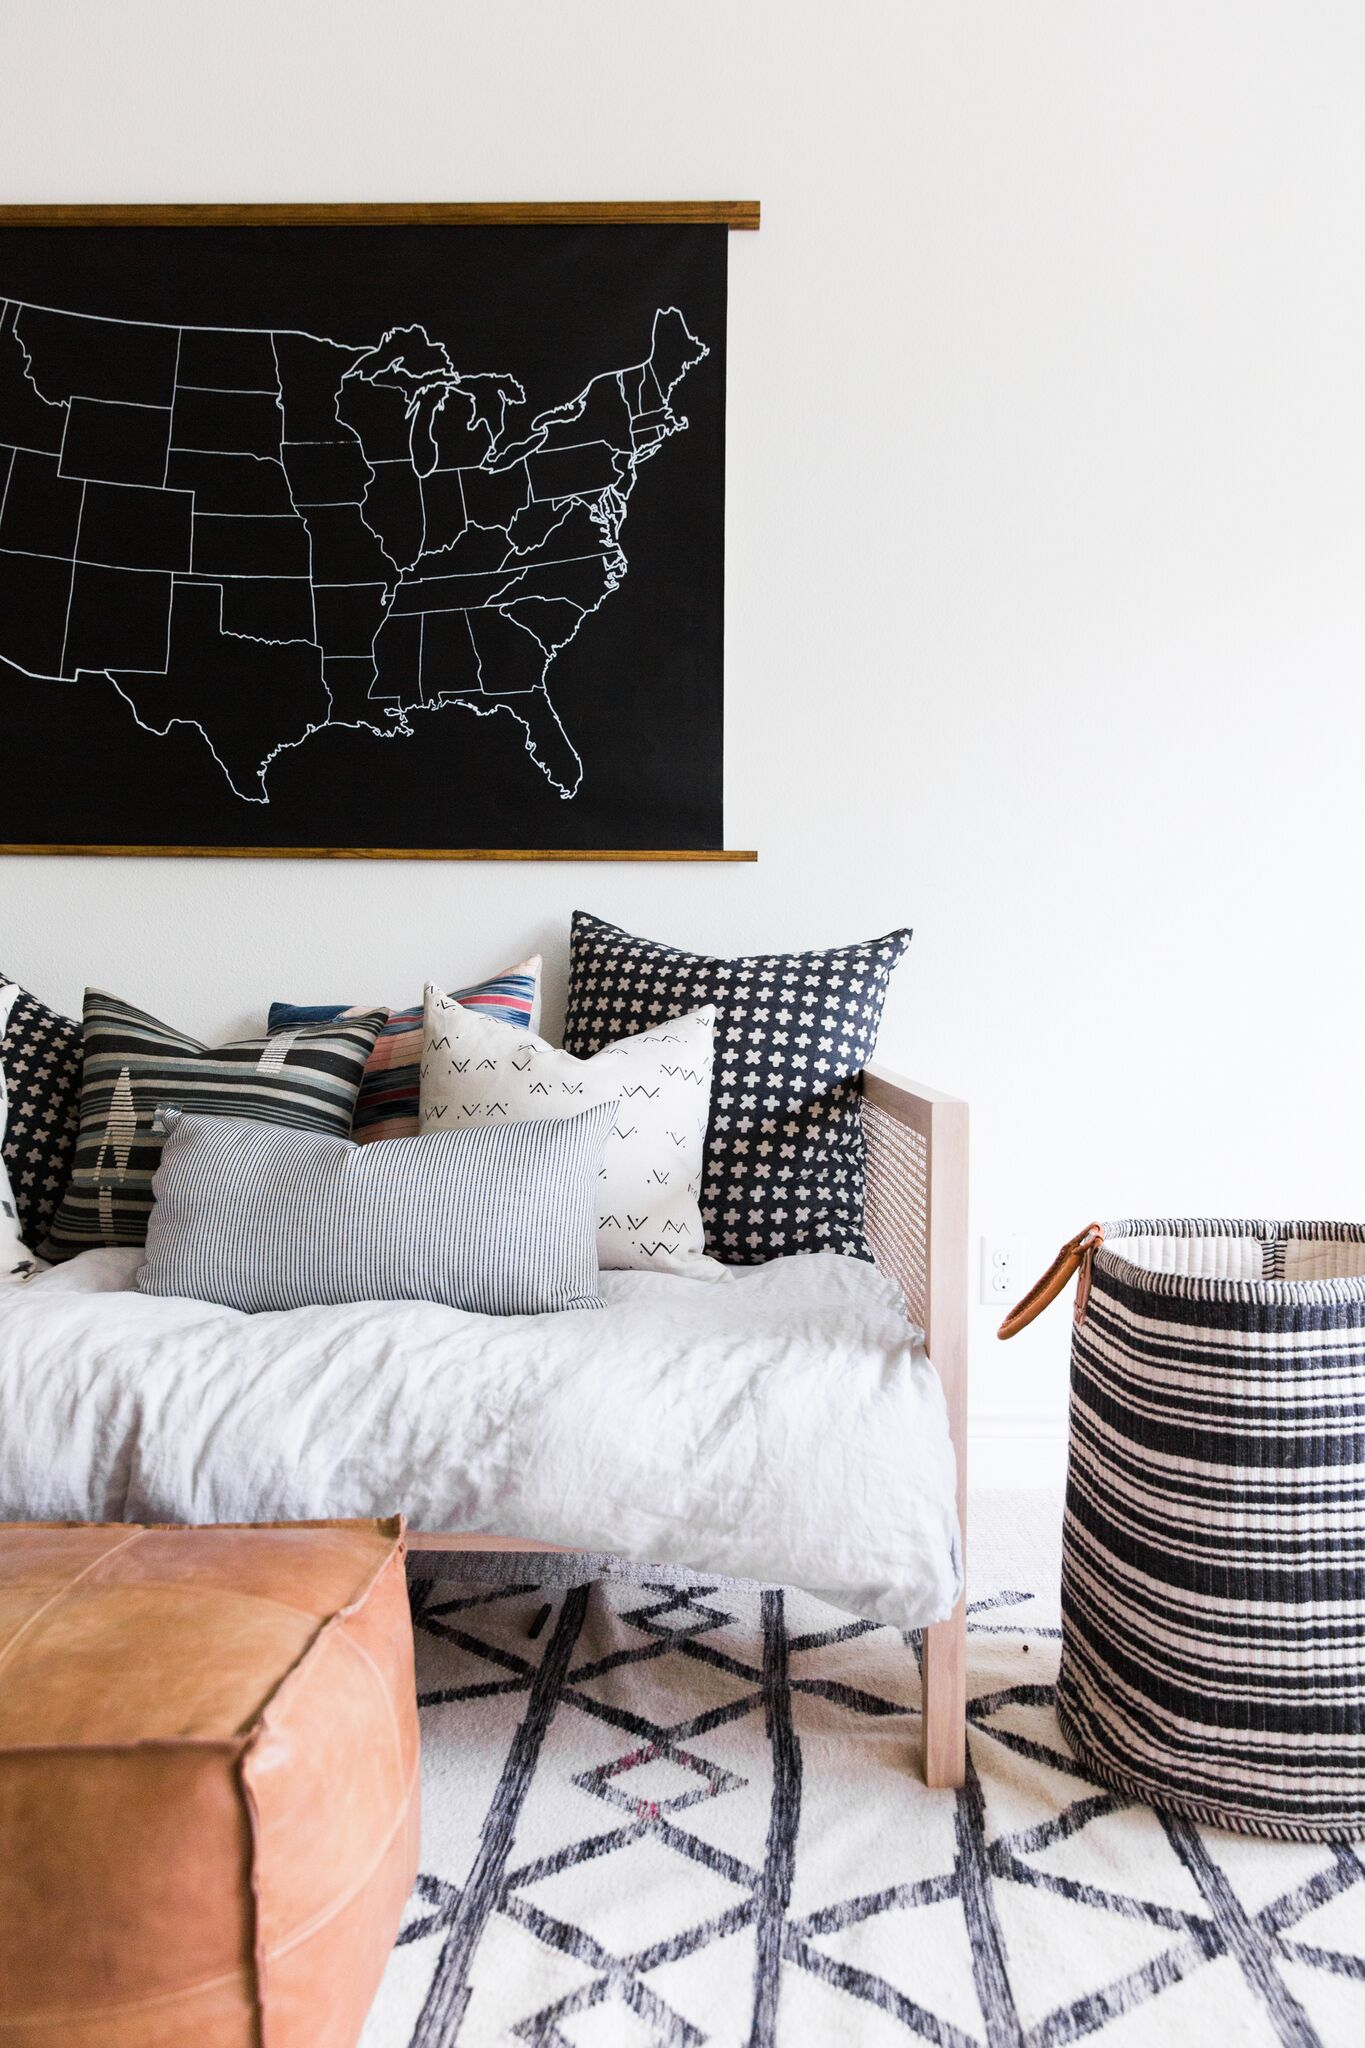 Coastal+Bohemian+Kids'+Playroom+Featuring+a+Daybed+with+Eclectic+Throw+Pillows.jpg